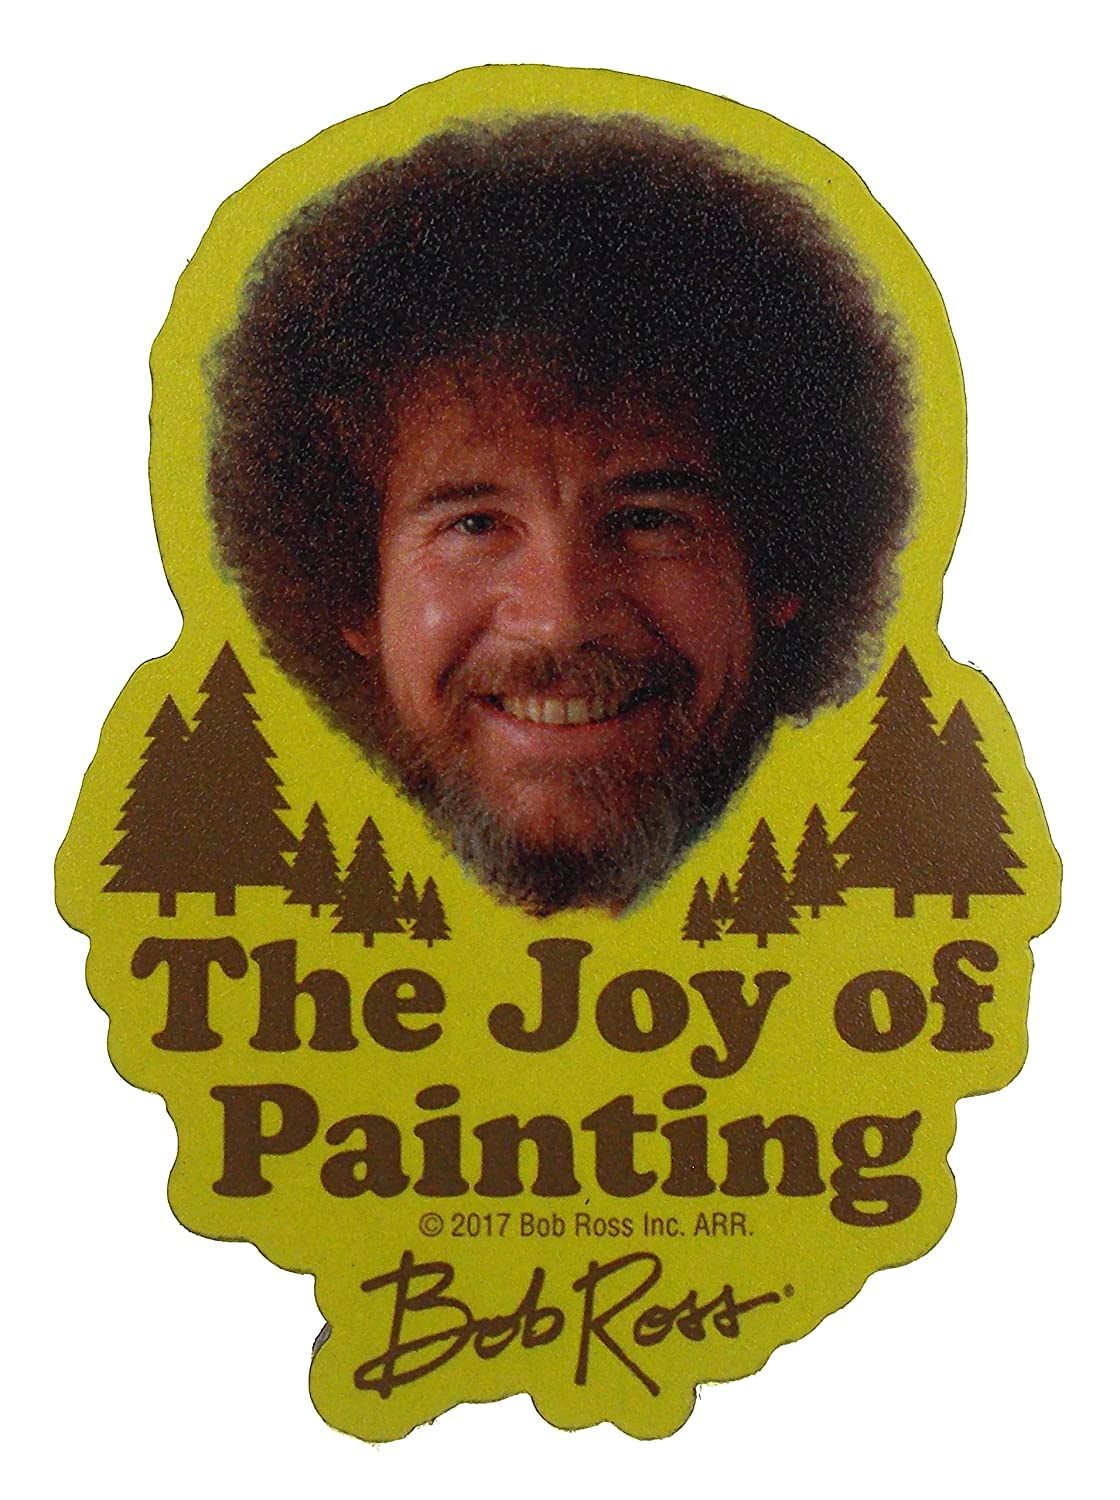 Bob Ross Socks /& The Joy of Painting Magnet HO-JOYPAINTINGSET Bob Ross Bundle